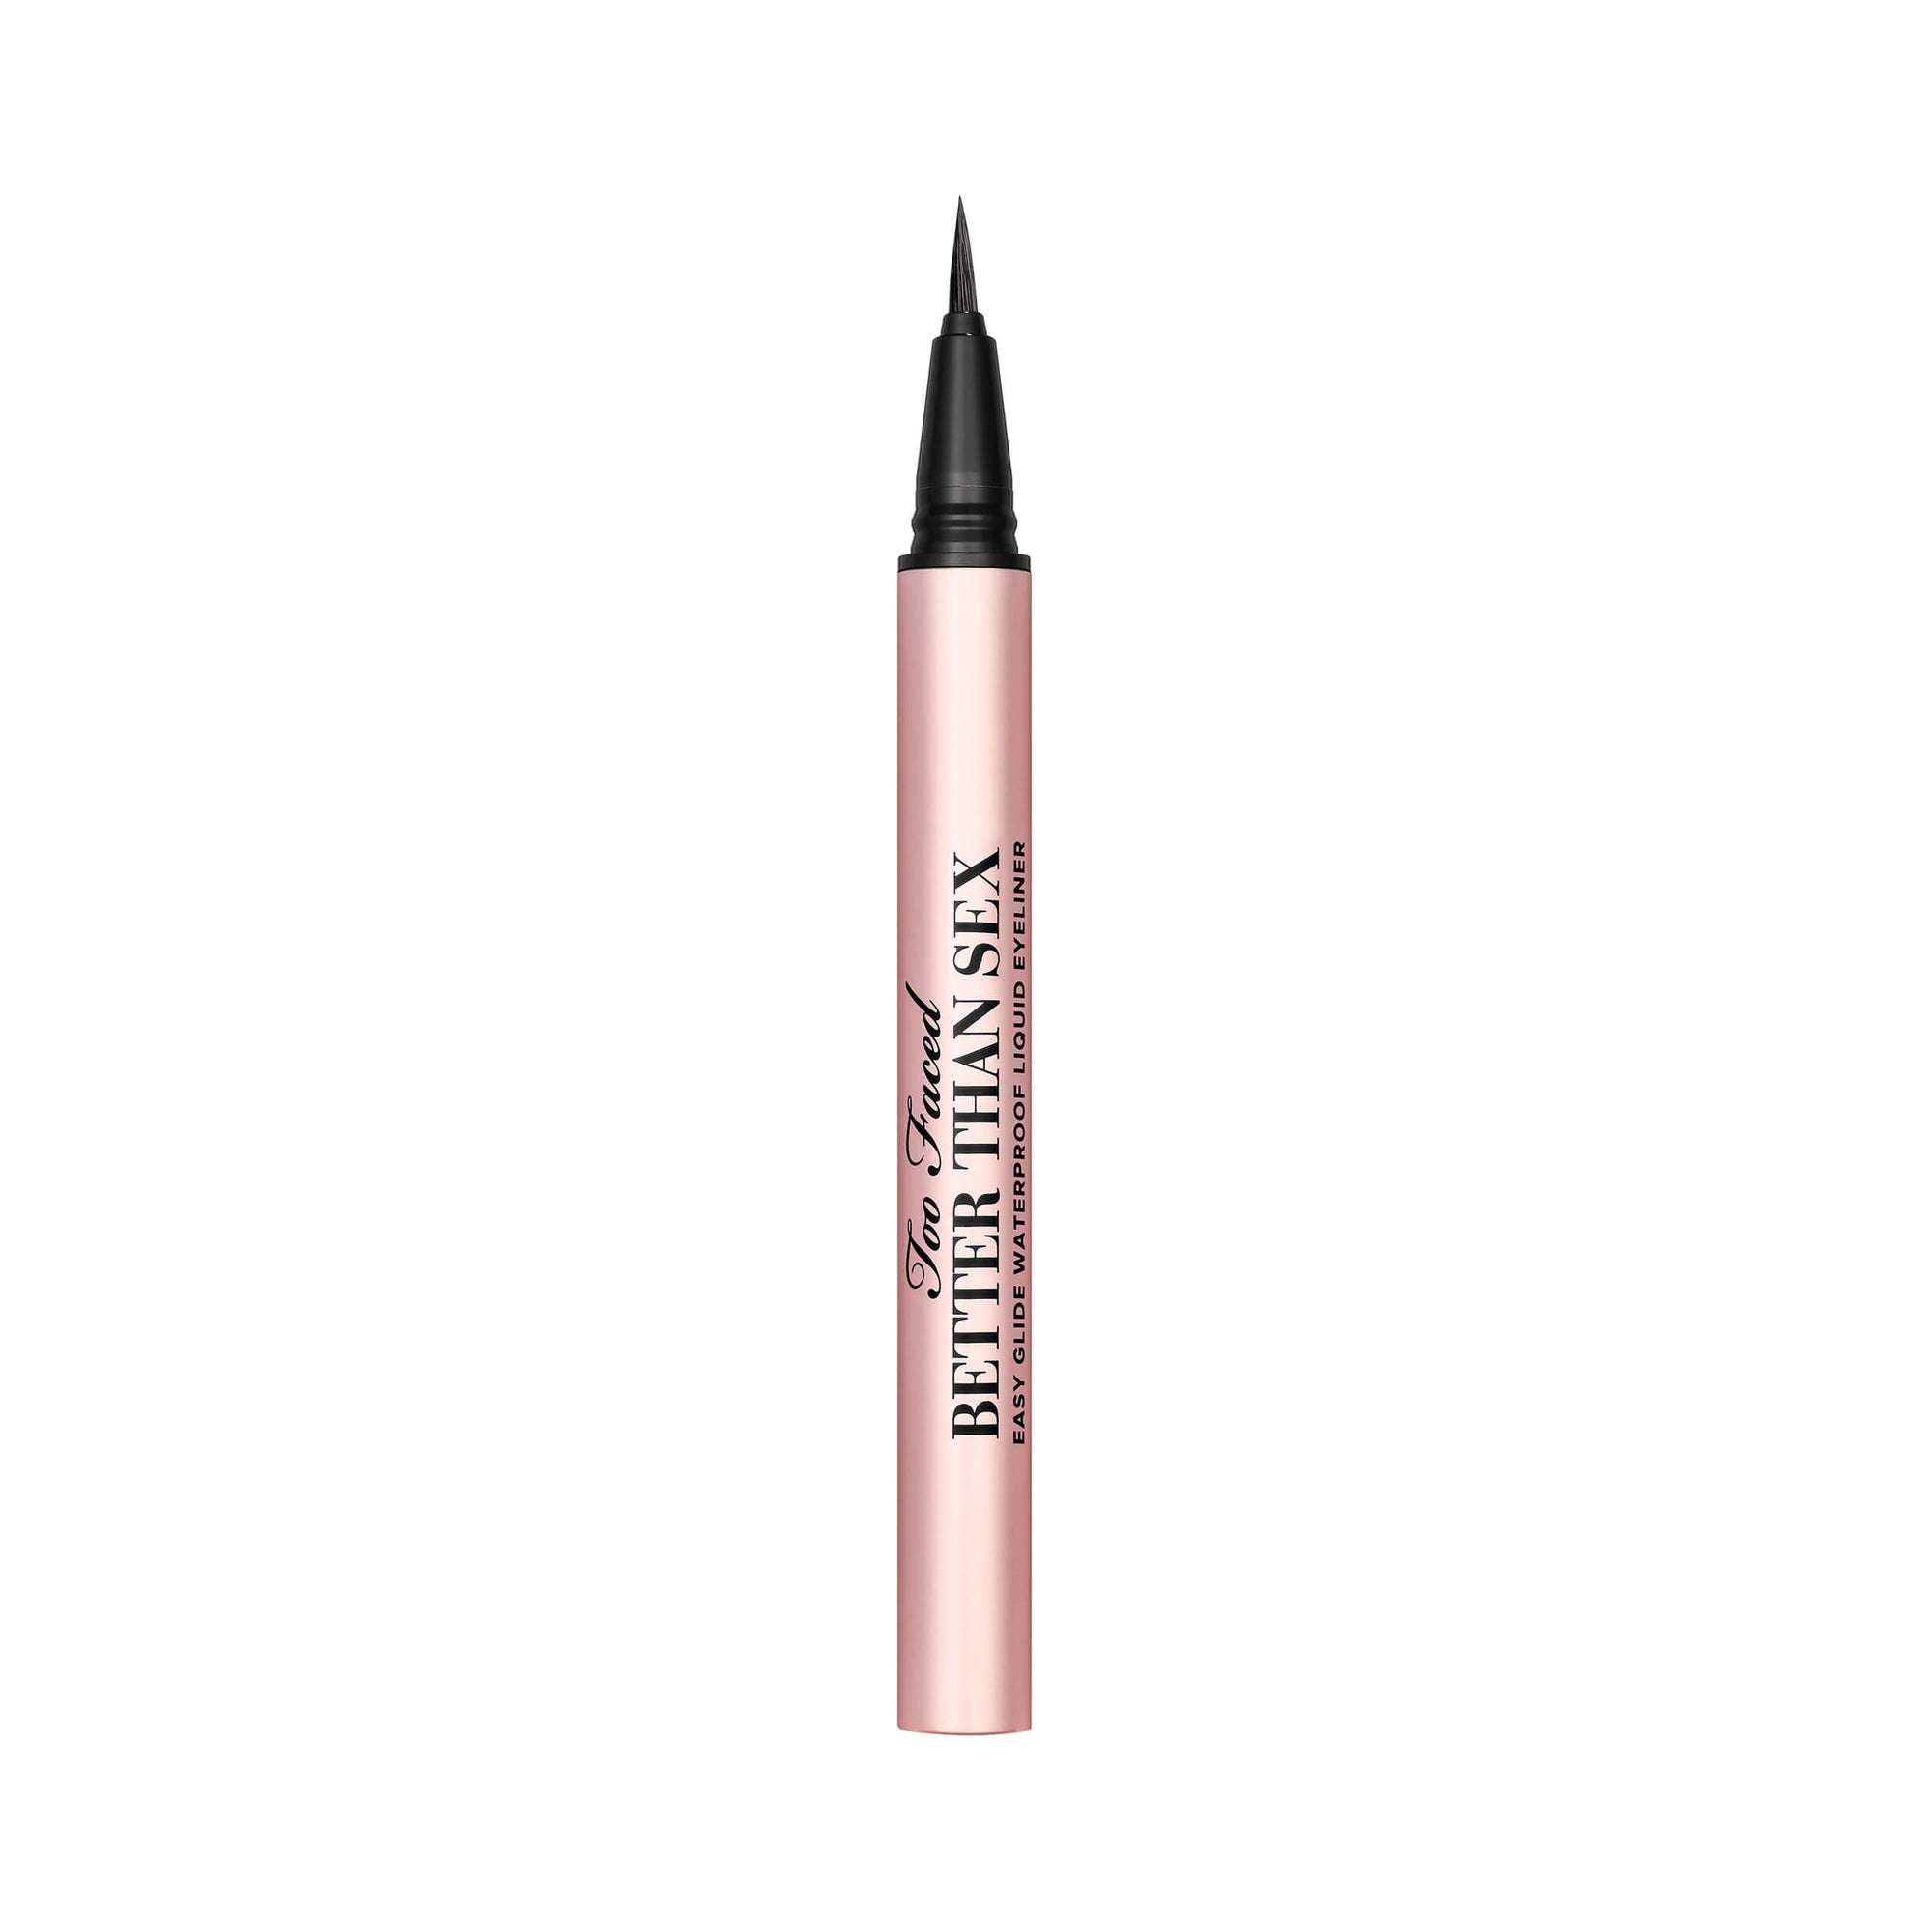 Too Faced Better Than Sex Easy Glide Waterproof Liquid Eyeliner